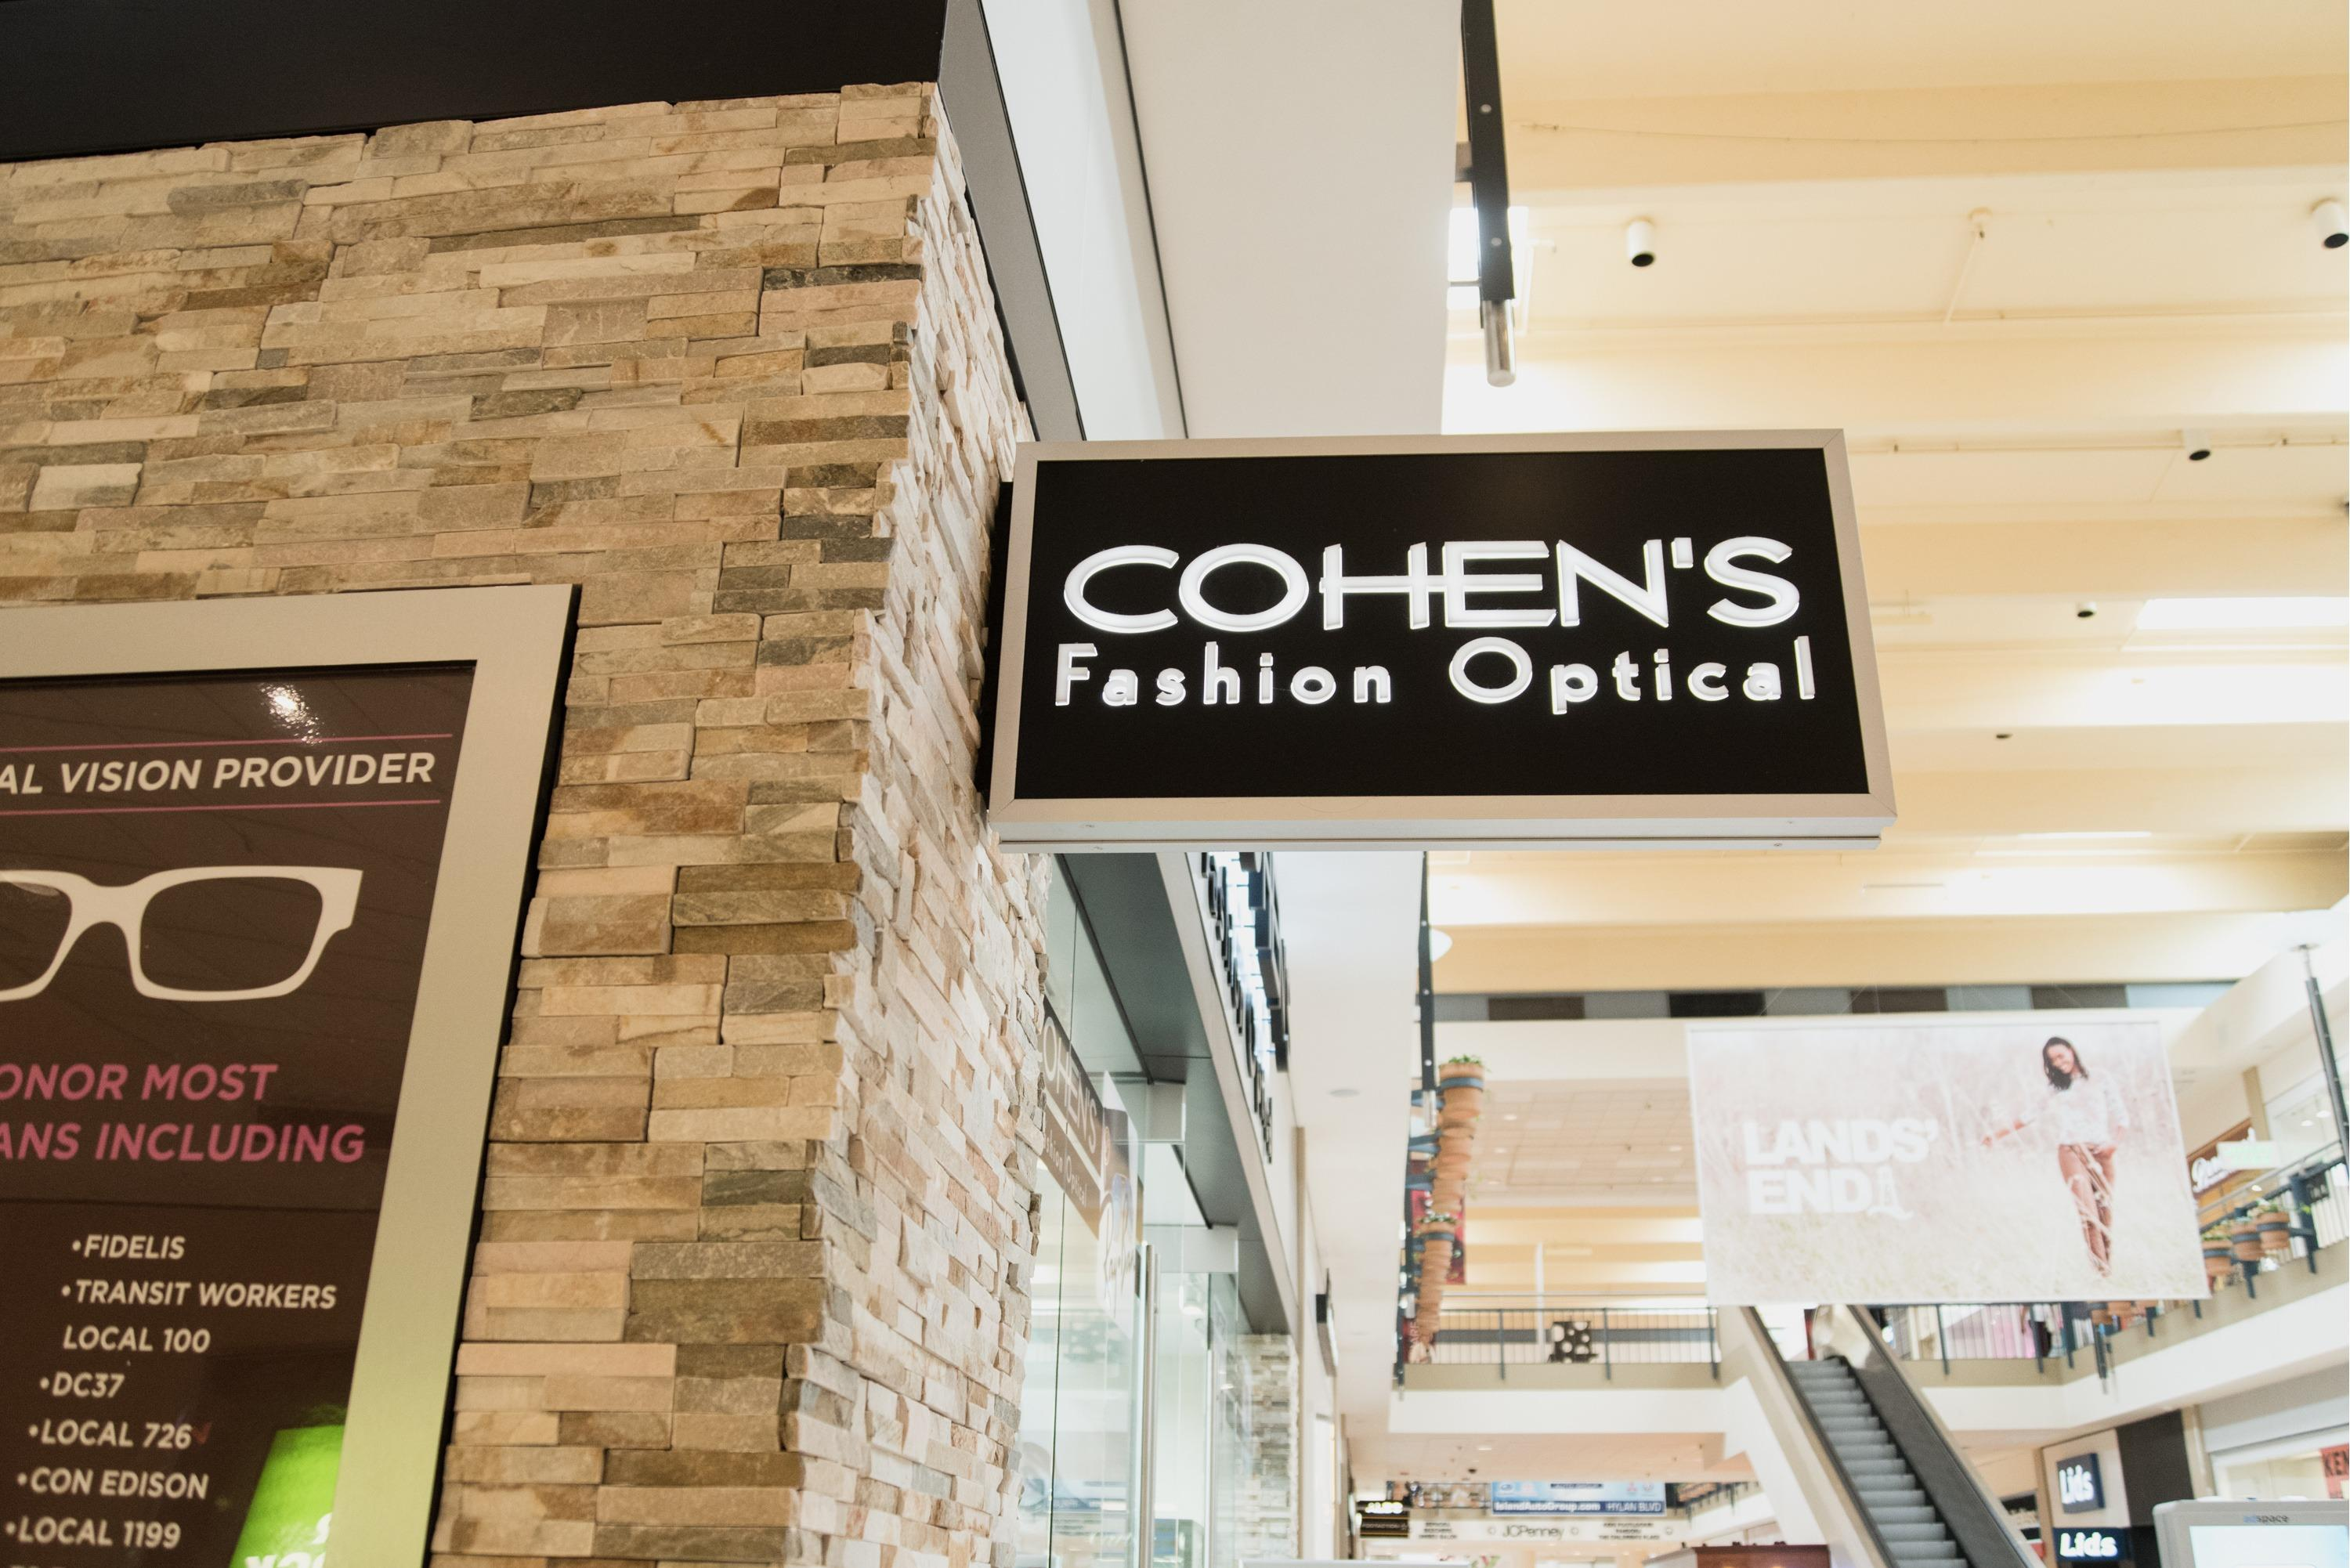 6526c904fa0a Cohen's Fashion Optical 2655 Richmond Ave Ste 2350, Staten Island, NY 10314  - YP.com